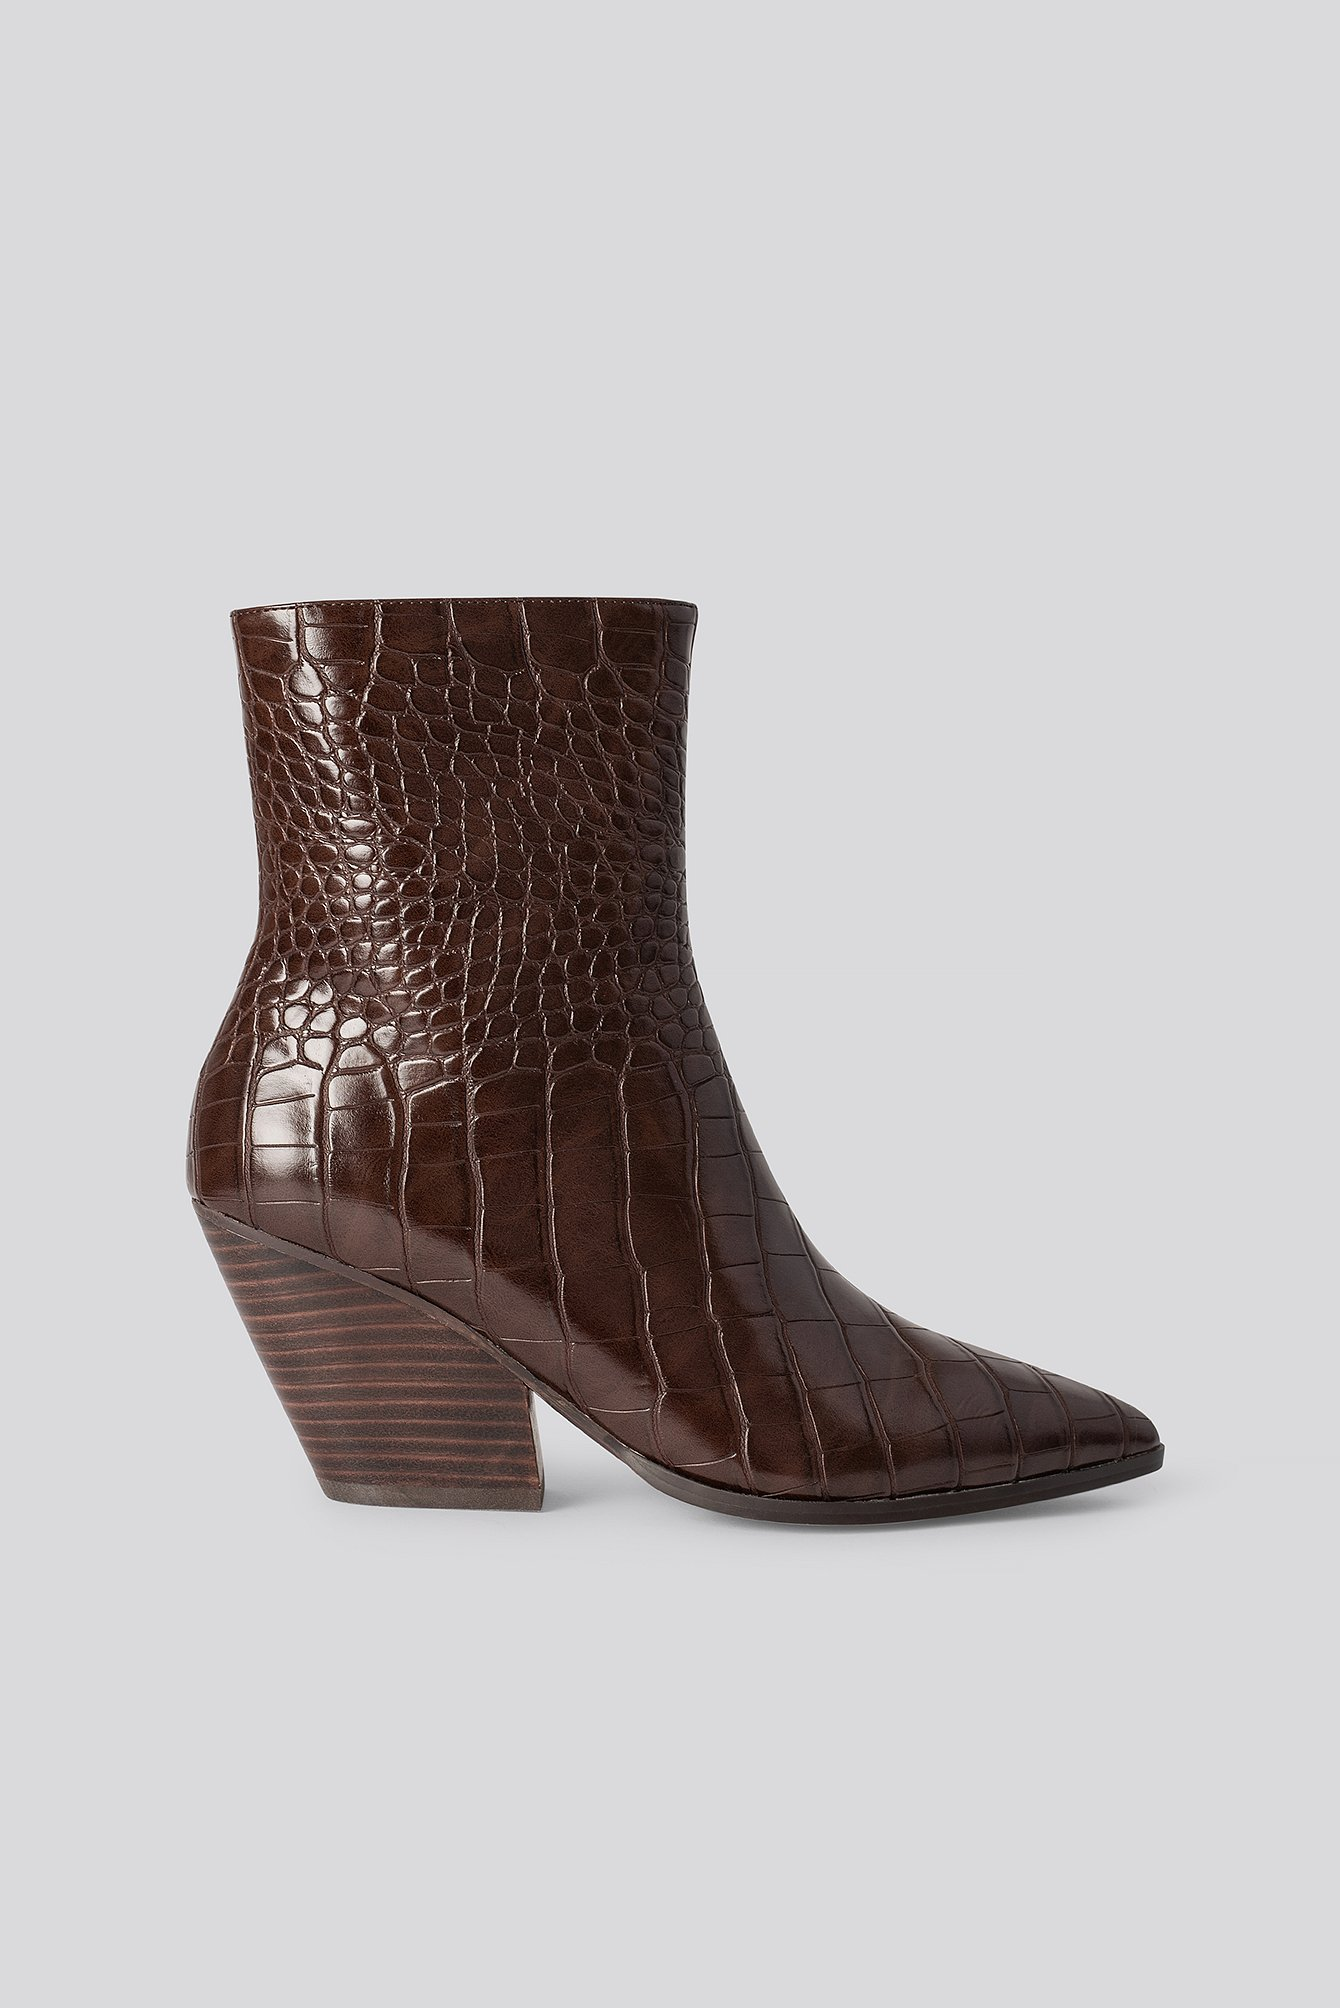 na-kd shoes -  Croc Western Heel Pointy Boots - Brown